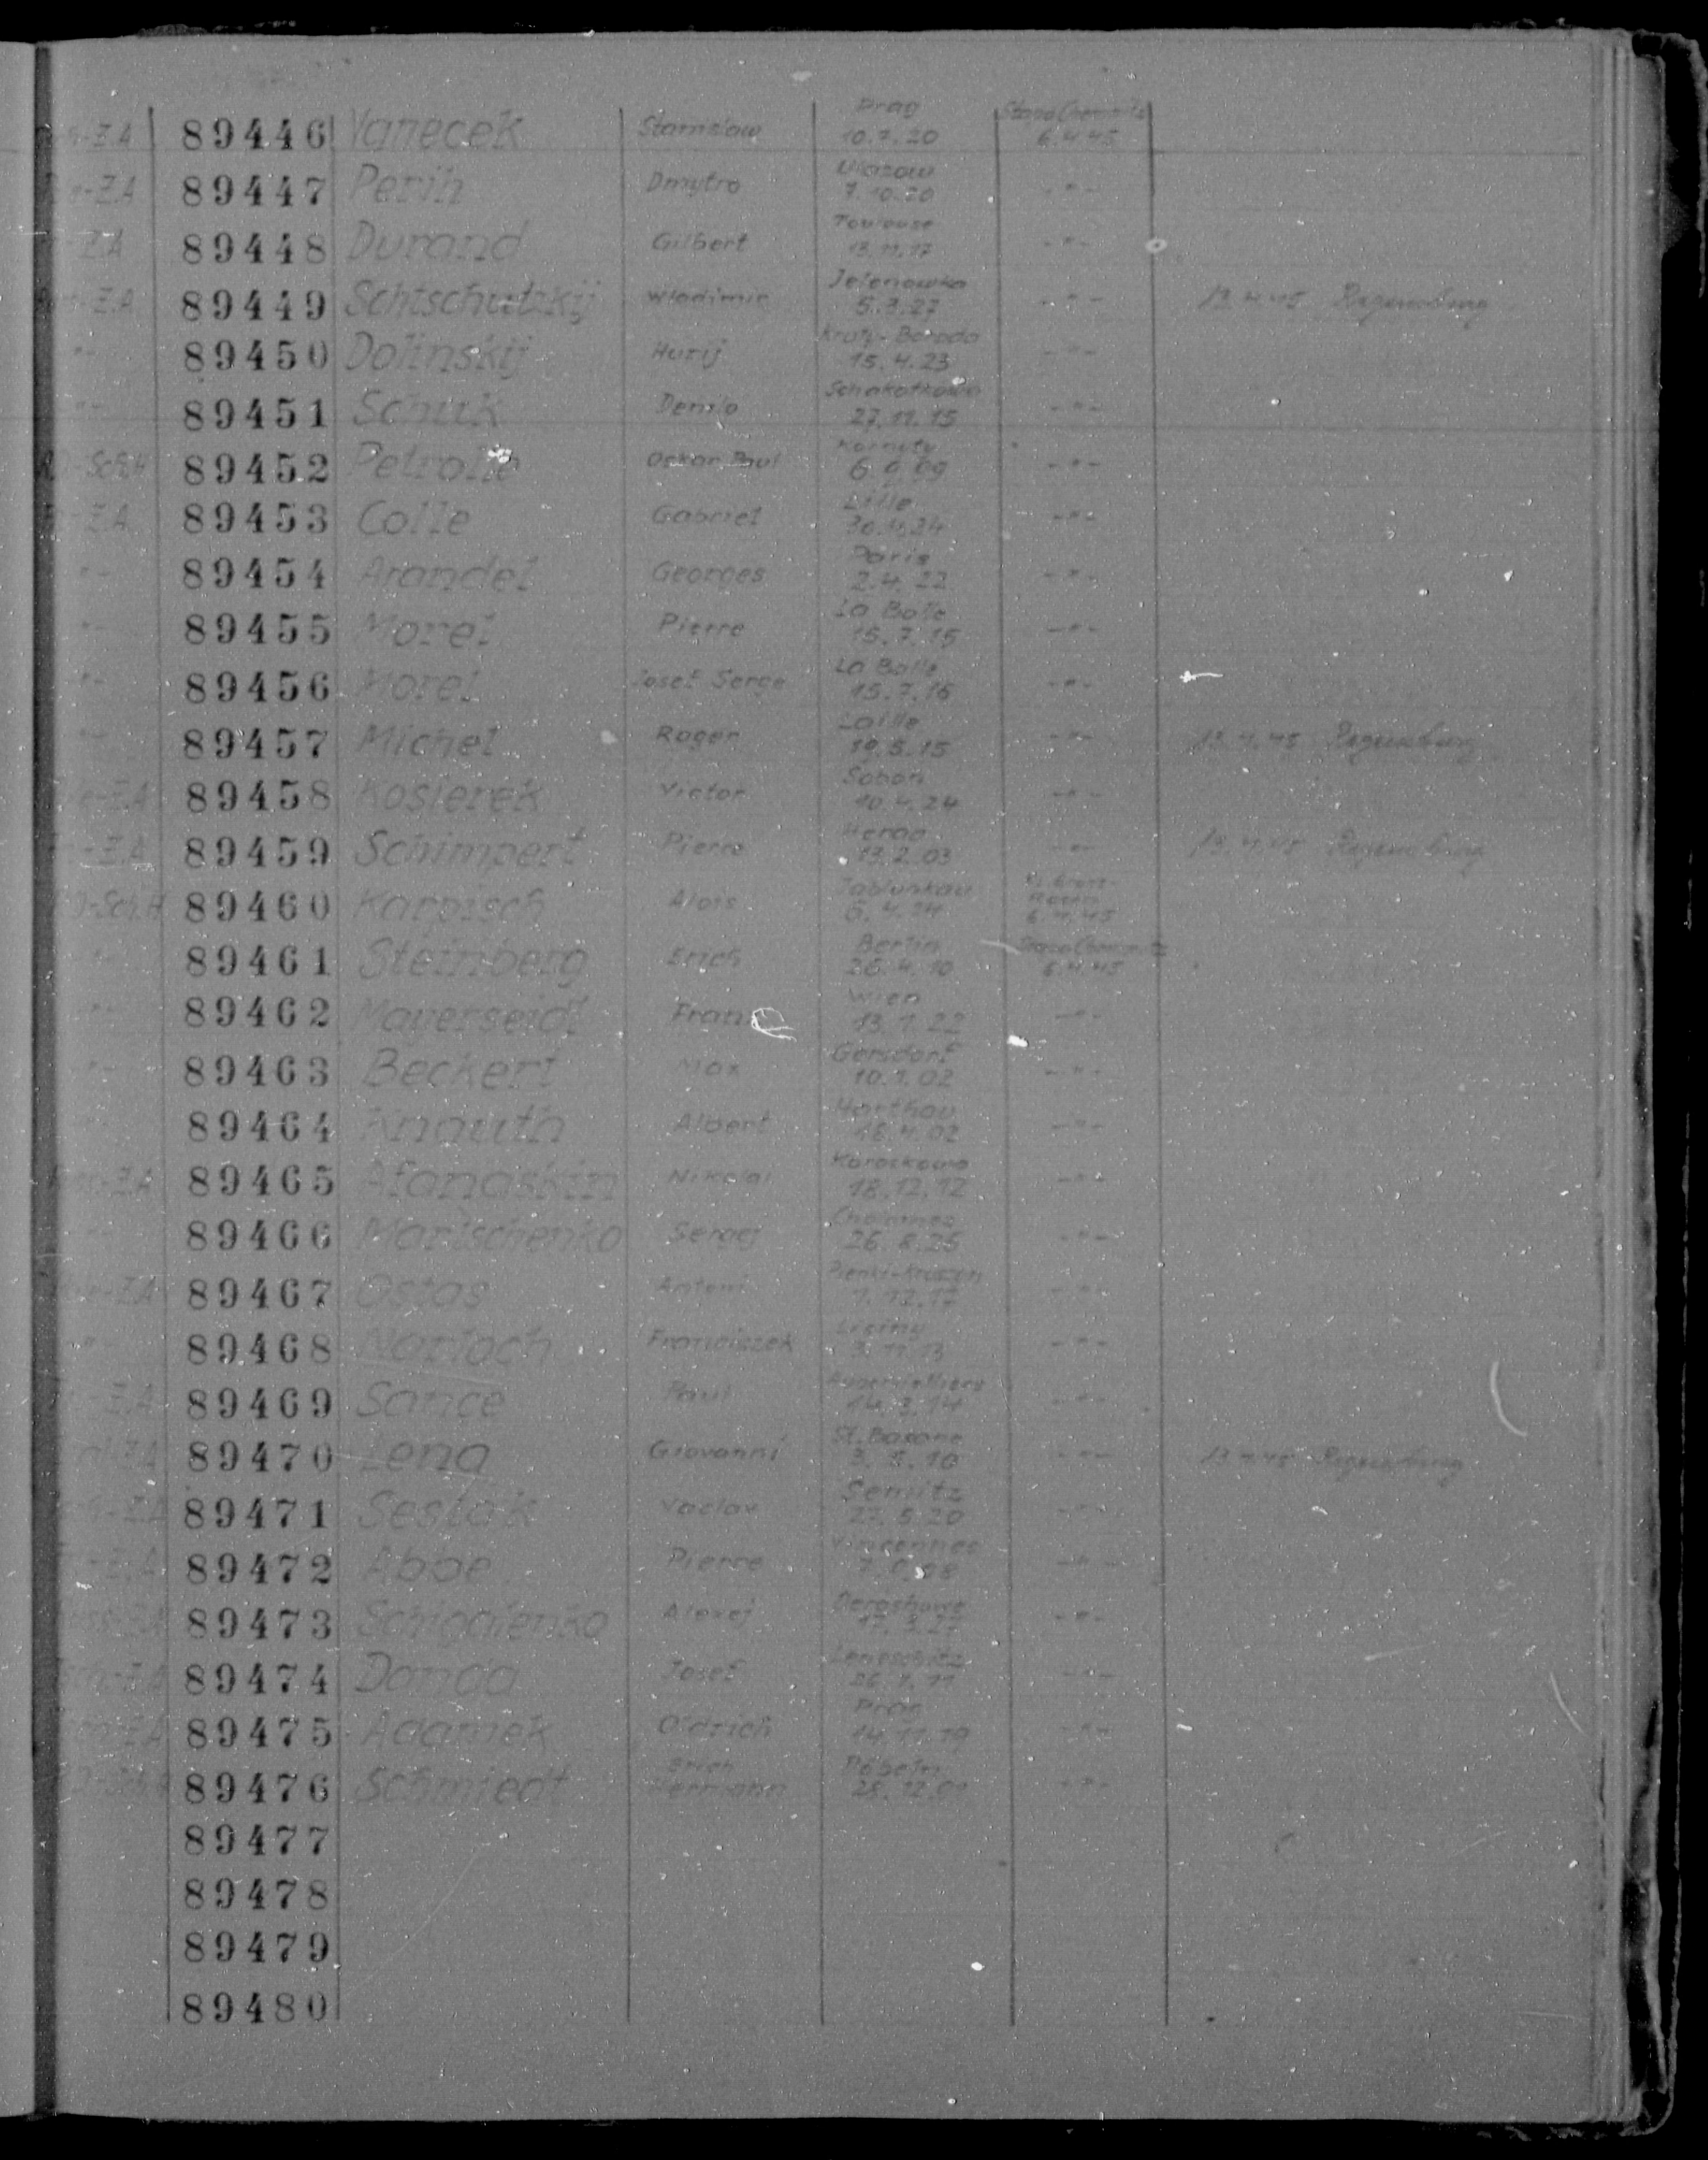 Lists of Inmates - Men (Book No. 6, page 131)